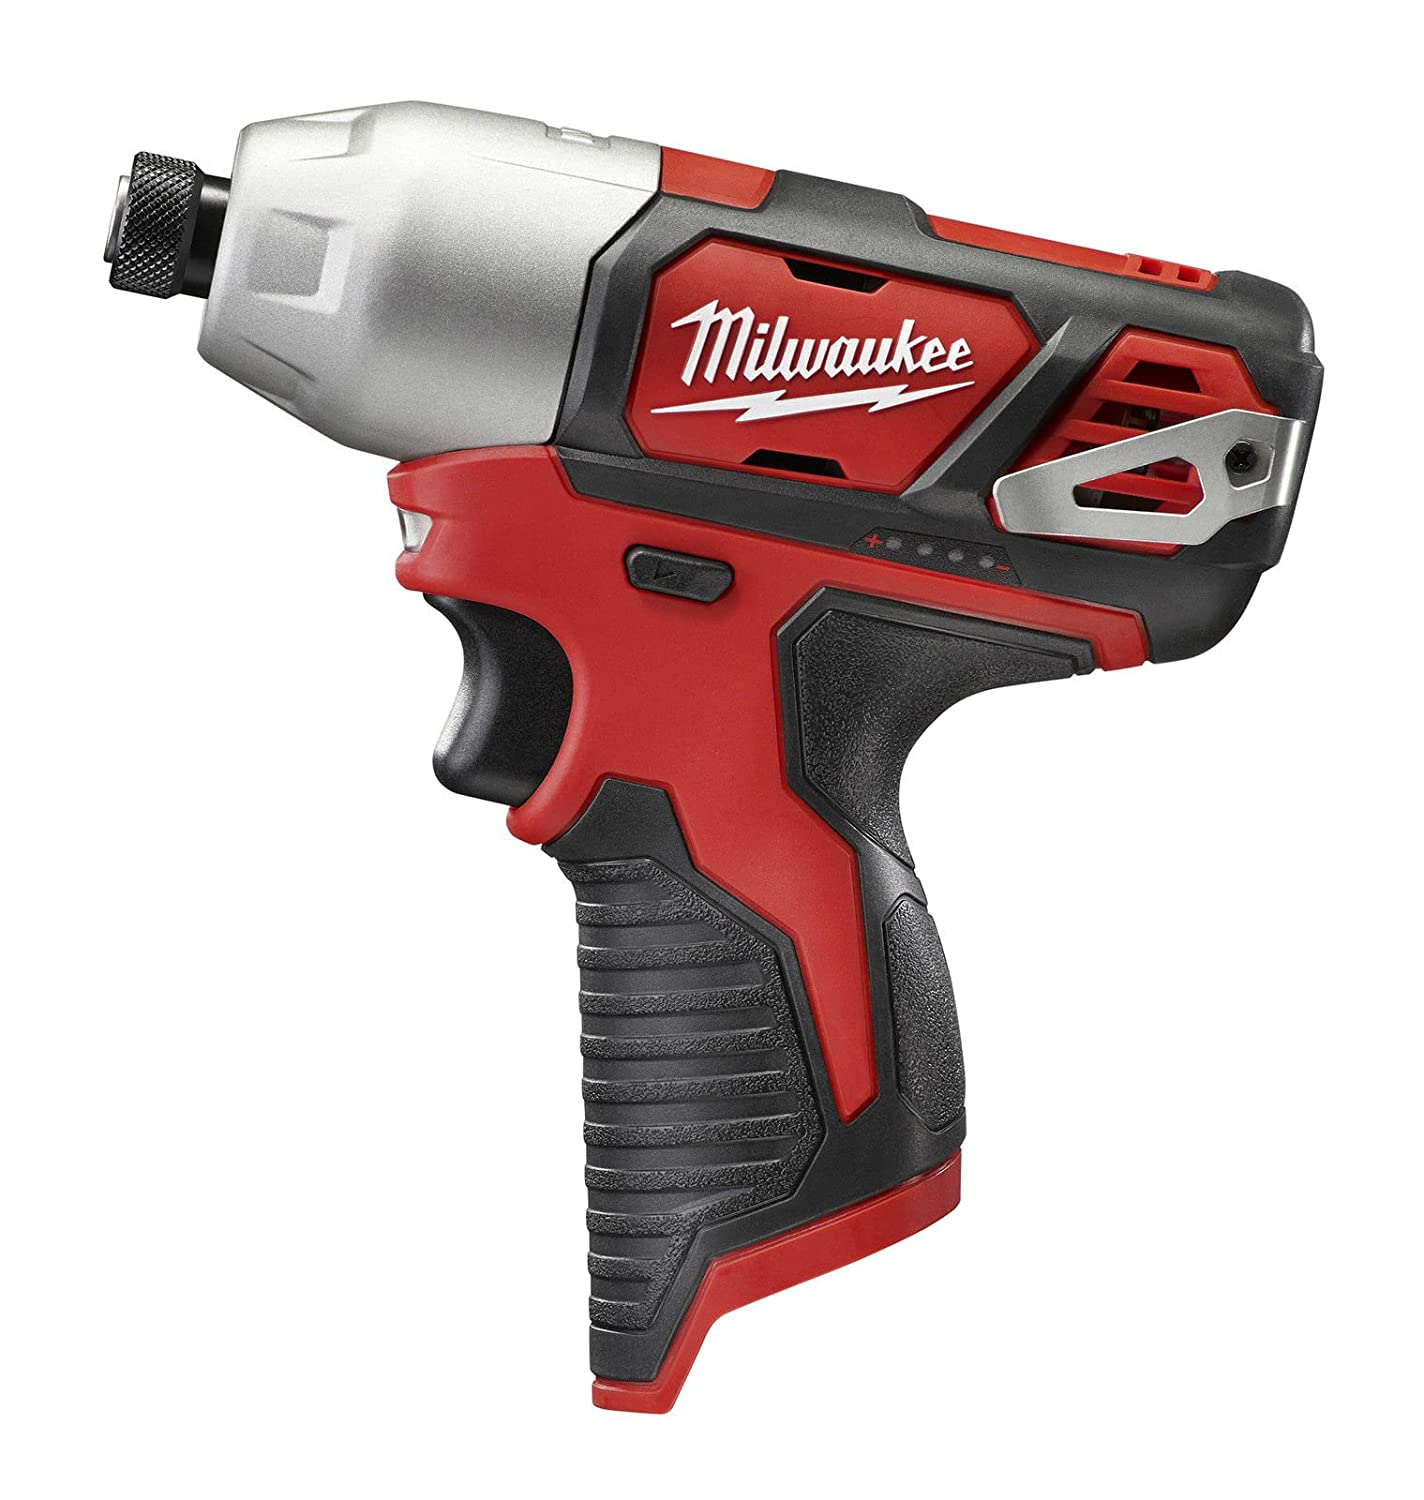 Milwaukee 2462-20 M12 1 4 Hex Impact Driver with Belt Clip – Tool Only